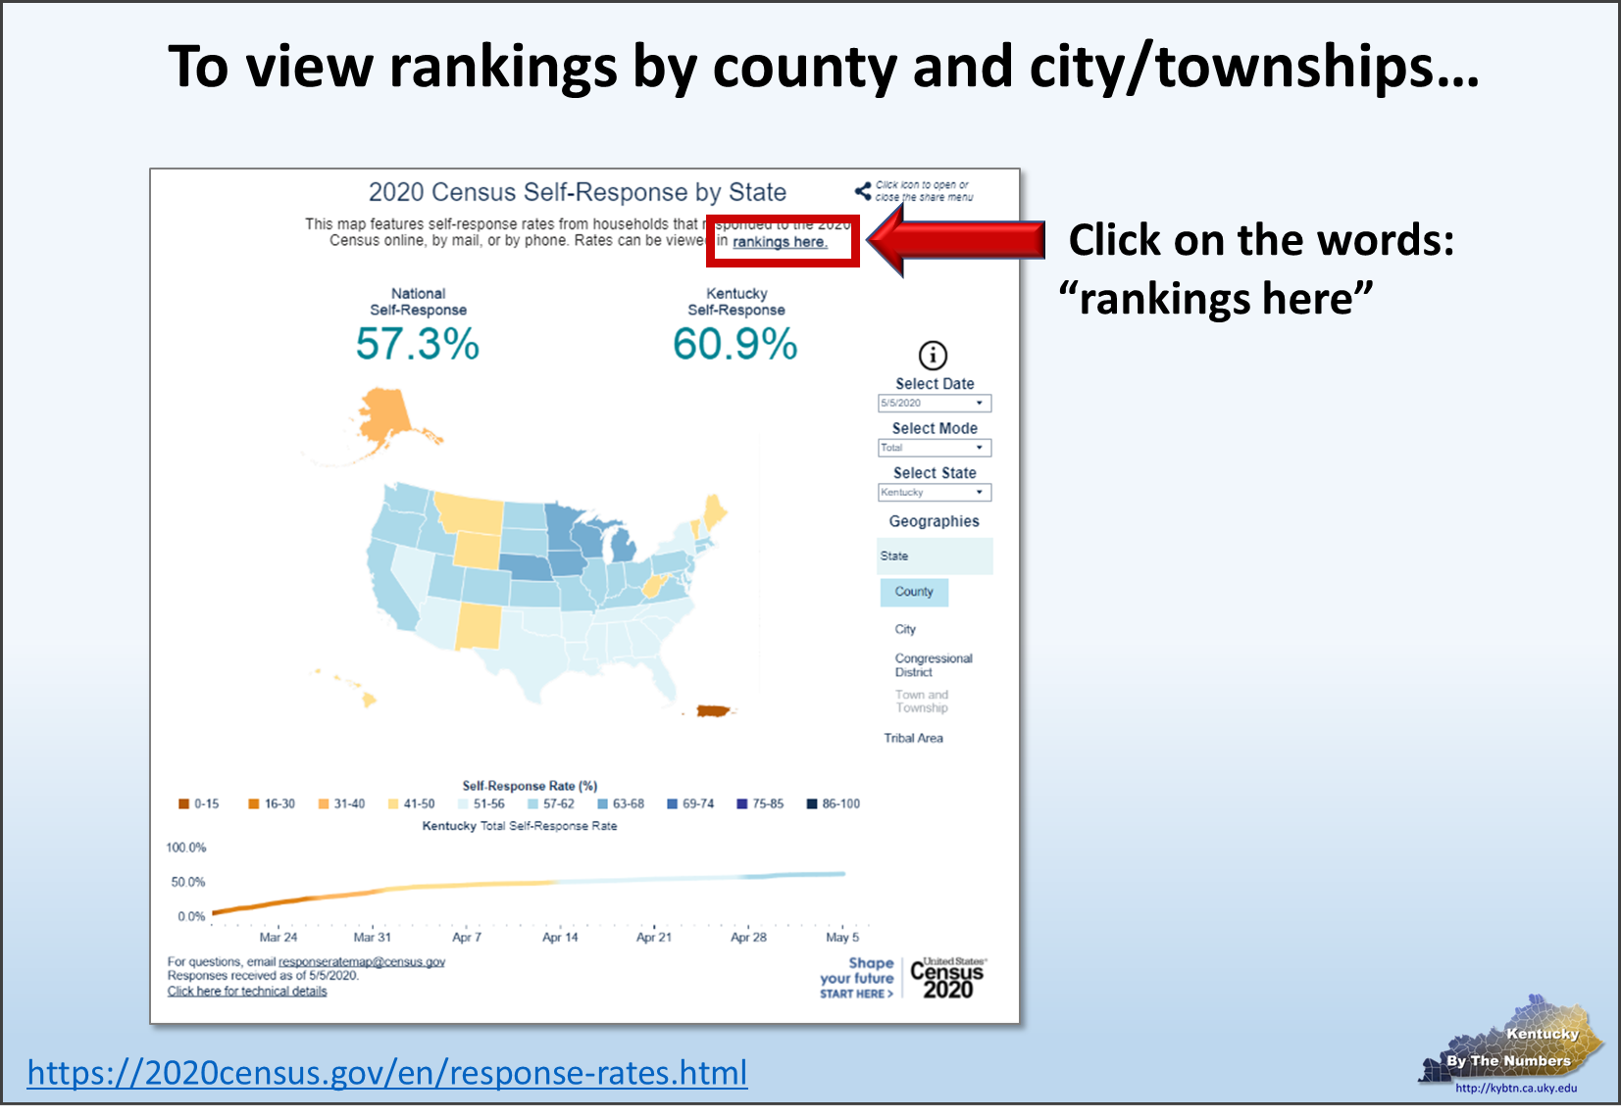 View rankings by county and city/townships